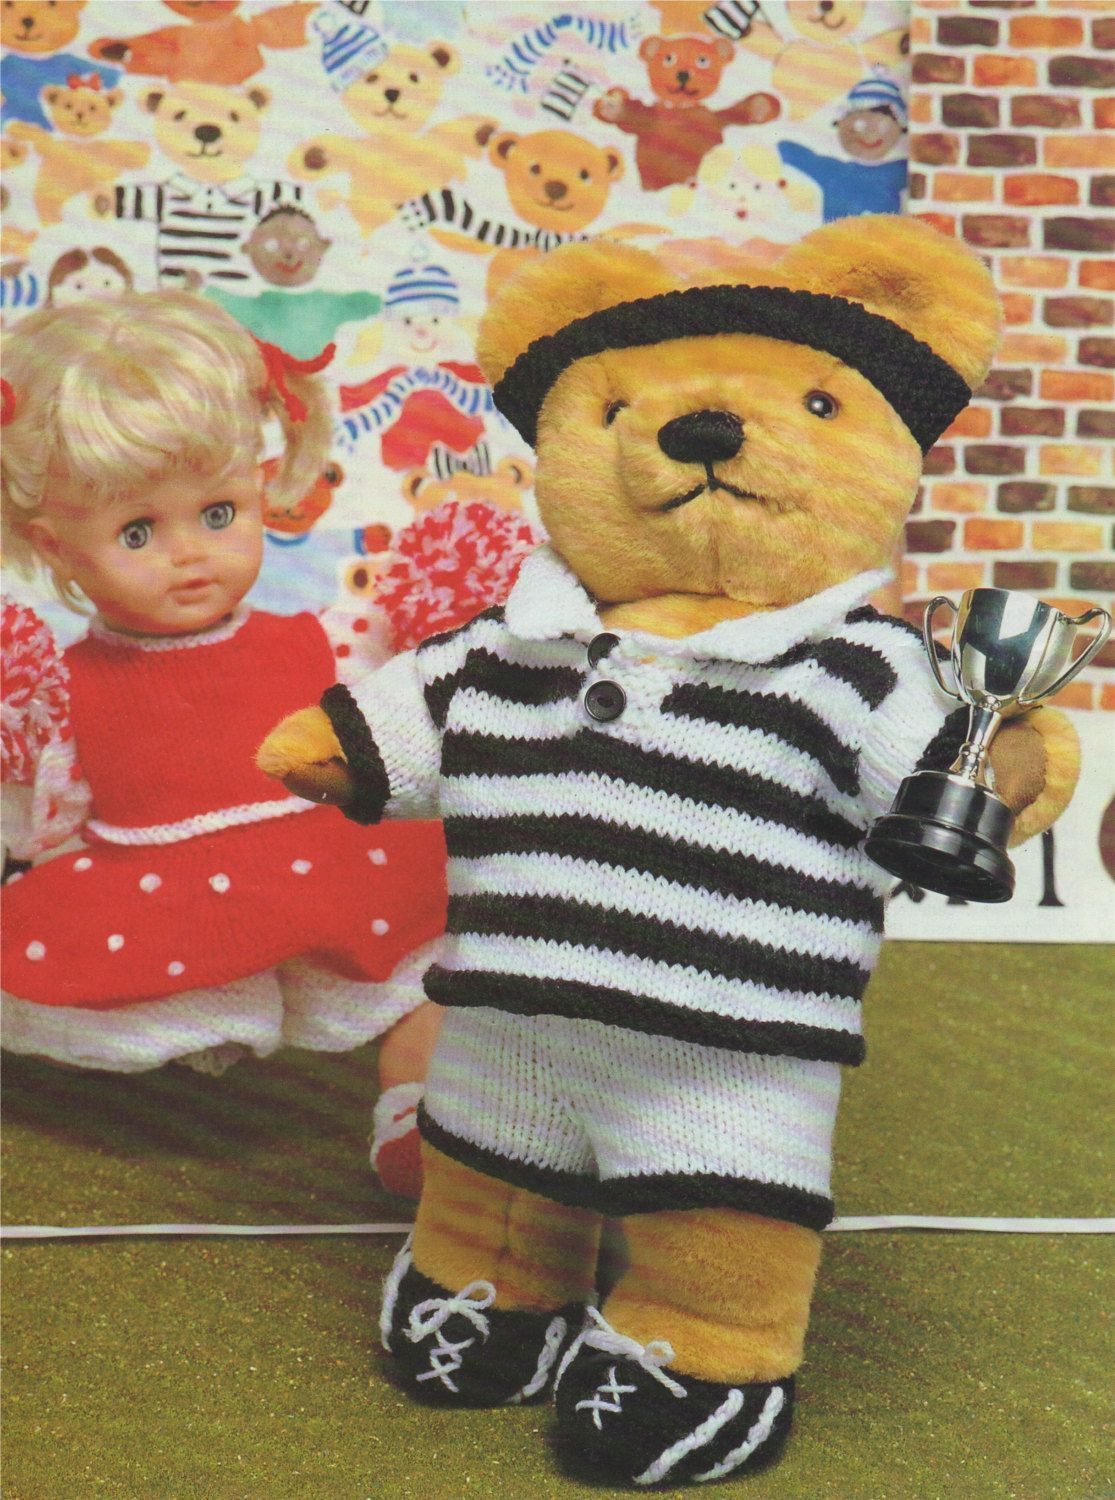 Teddy Bears Rugby Kit and Dolls Cheerleader Clothes Knitting Pattern PDF for 15 - 19 inch Teddy and 12 - 22 inch Doll, DK Yarn, Download #18inchcheerleaderclothes Teddy Bear and Dolls Clothes PDF Knitting Pattern . Ted Rugby Kit and Doll Cheerleader Outfit . DK . 15 - 19 inch Teddy . 12 - 22 inch Doll by PDFKnittingCrochet on Etsy #18inchcheerleaderclothes Teddy Bears Rugby Kit and Dolls Cheerleader Clothes Knitting Pattern PDF for 15 - 19 inch Teddy and 12 - 22 inch Doll, DK Yarn, Download #18i #18inchcheerleaderclothes